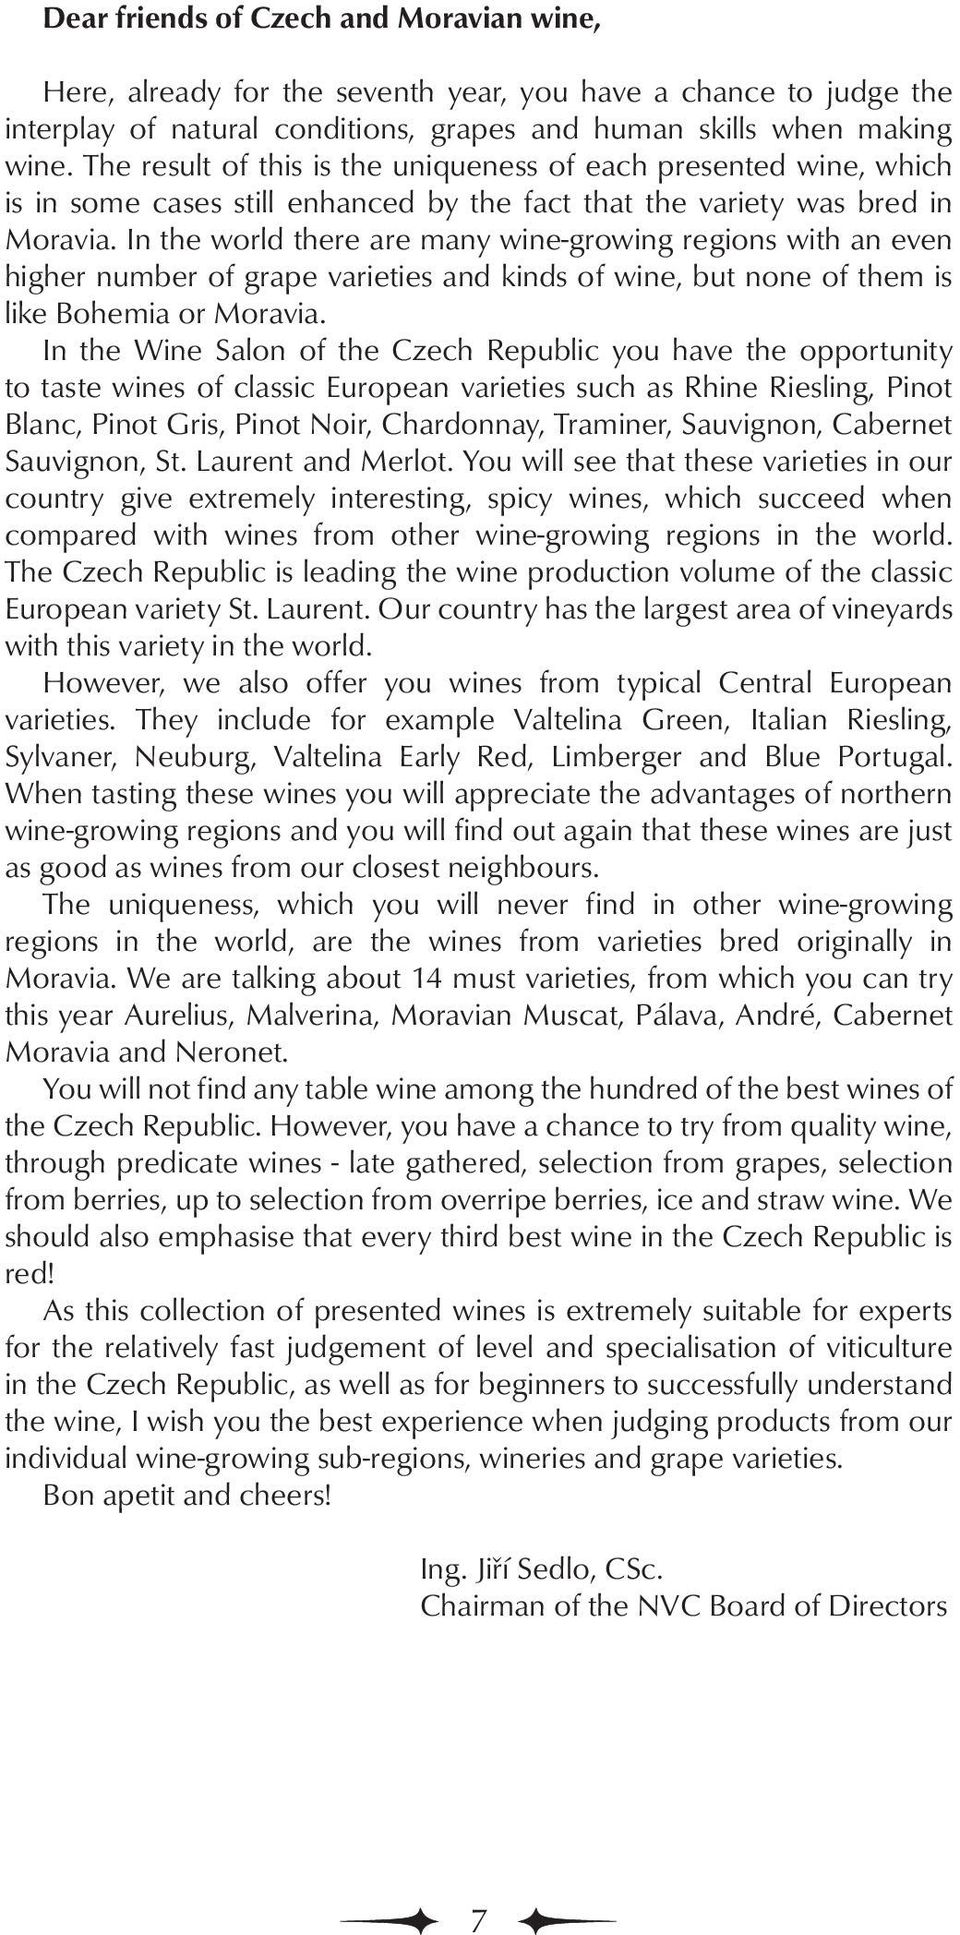 In the world there are many wine-growing regions with an even higher number of grape varieties and kinds of wine, but none of them is like Bohemia or Moravia.